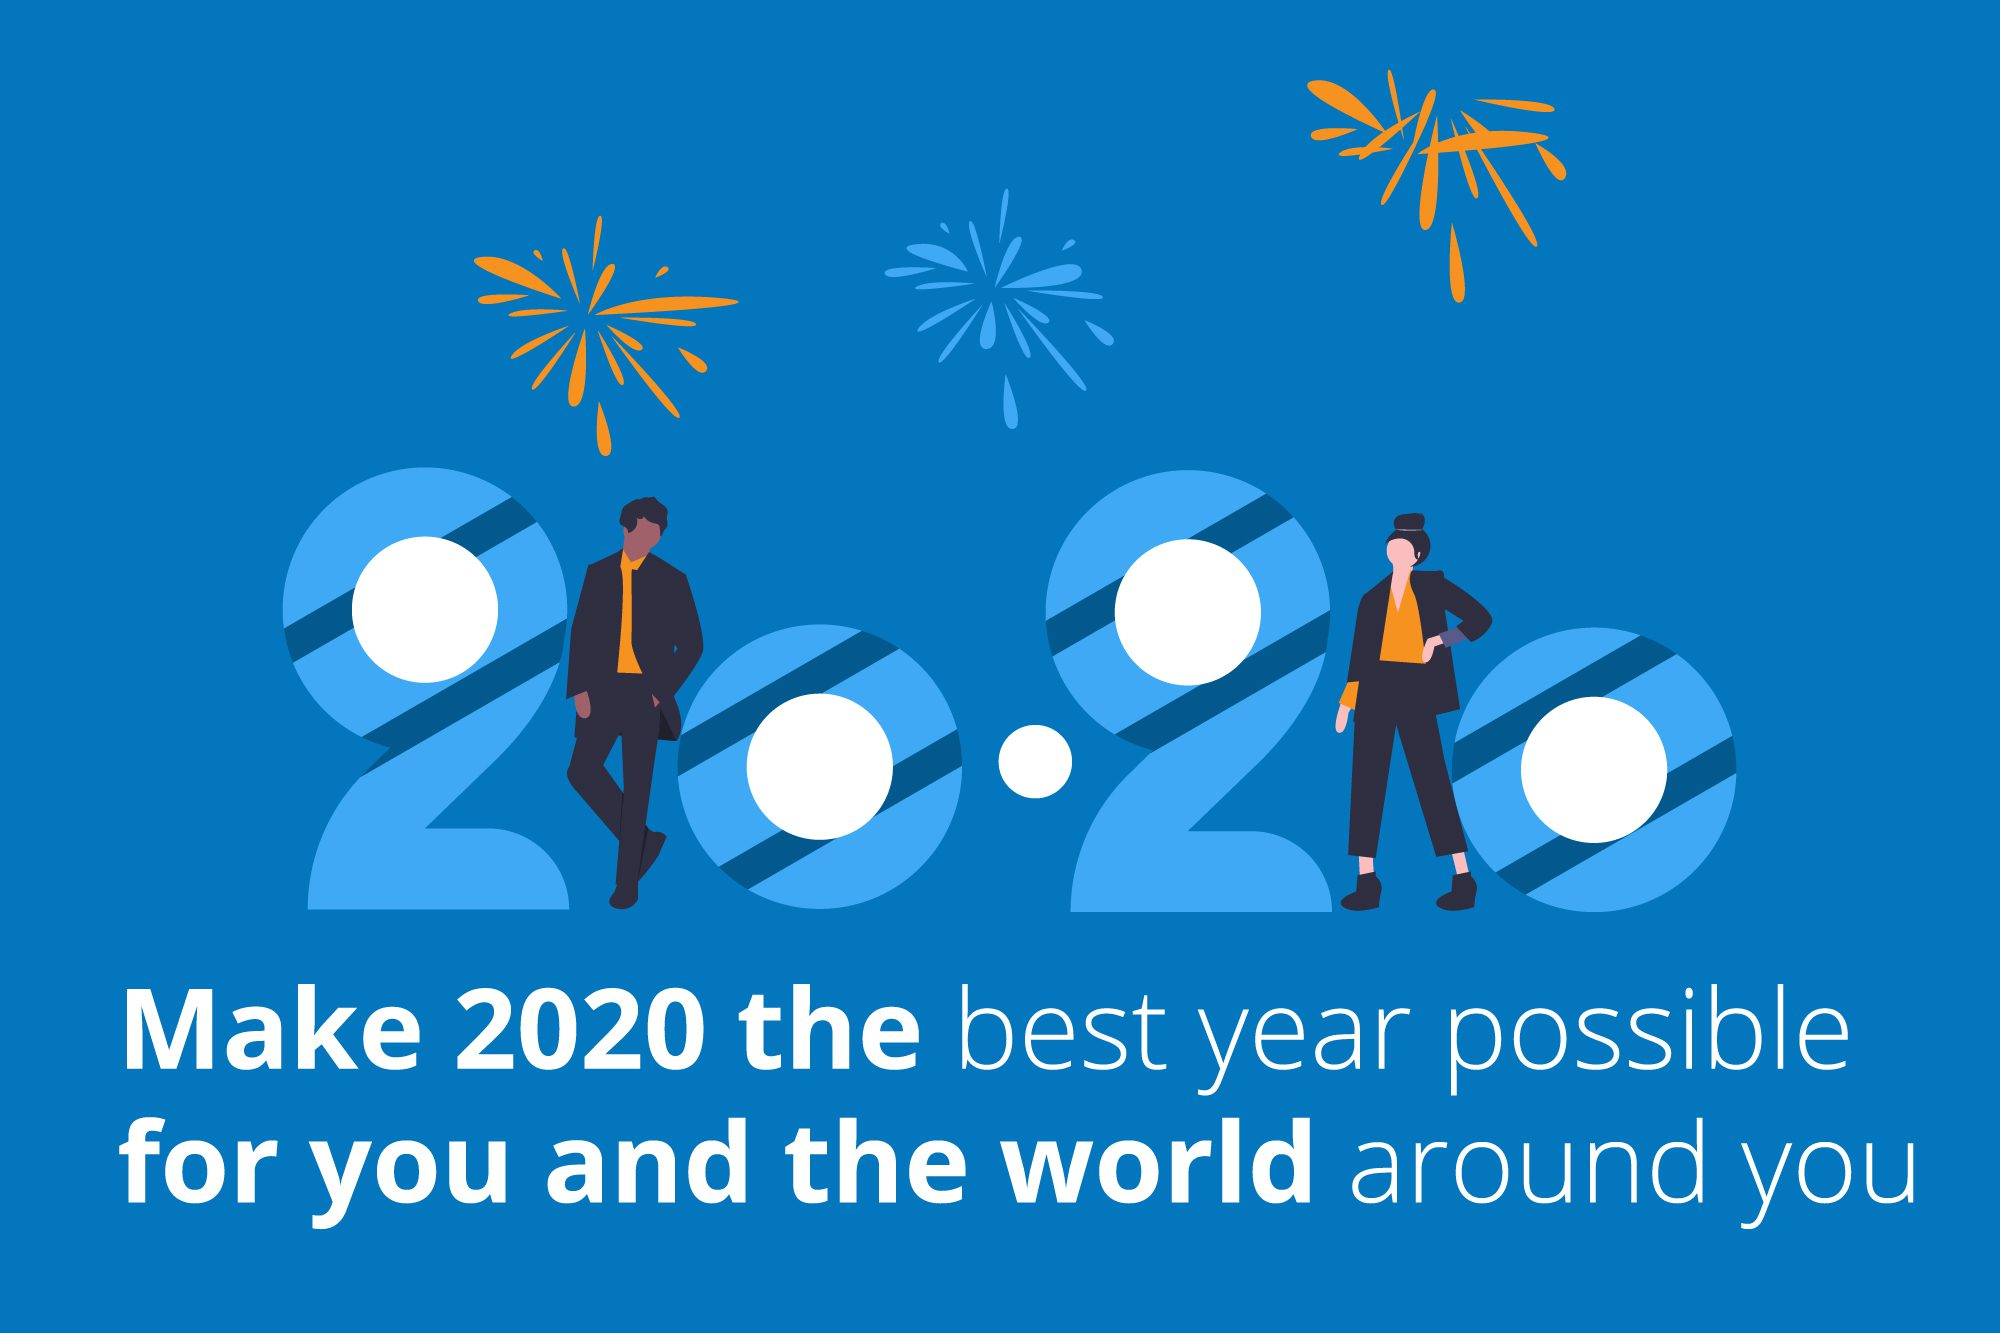 """Make 2020 the best year possible for you and the world around you."""